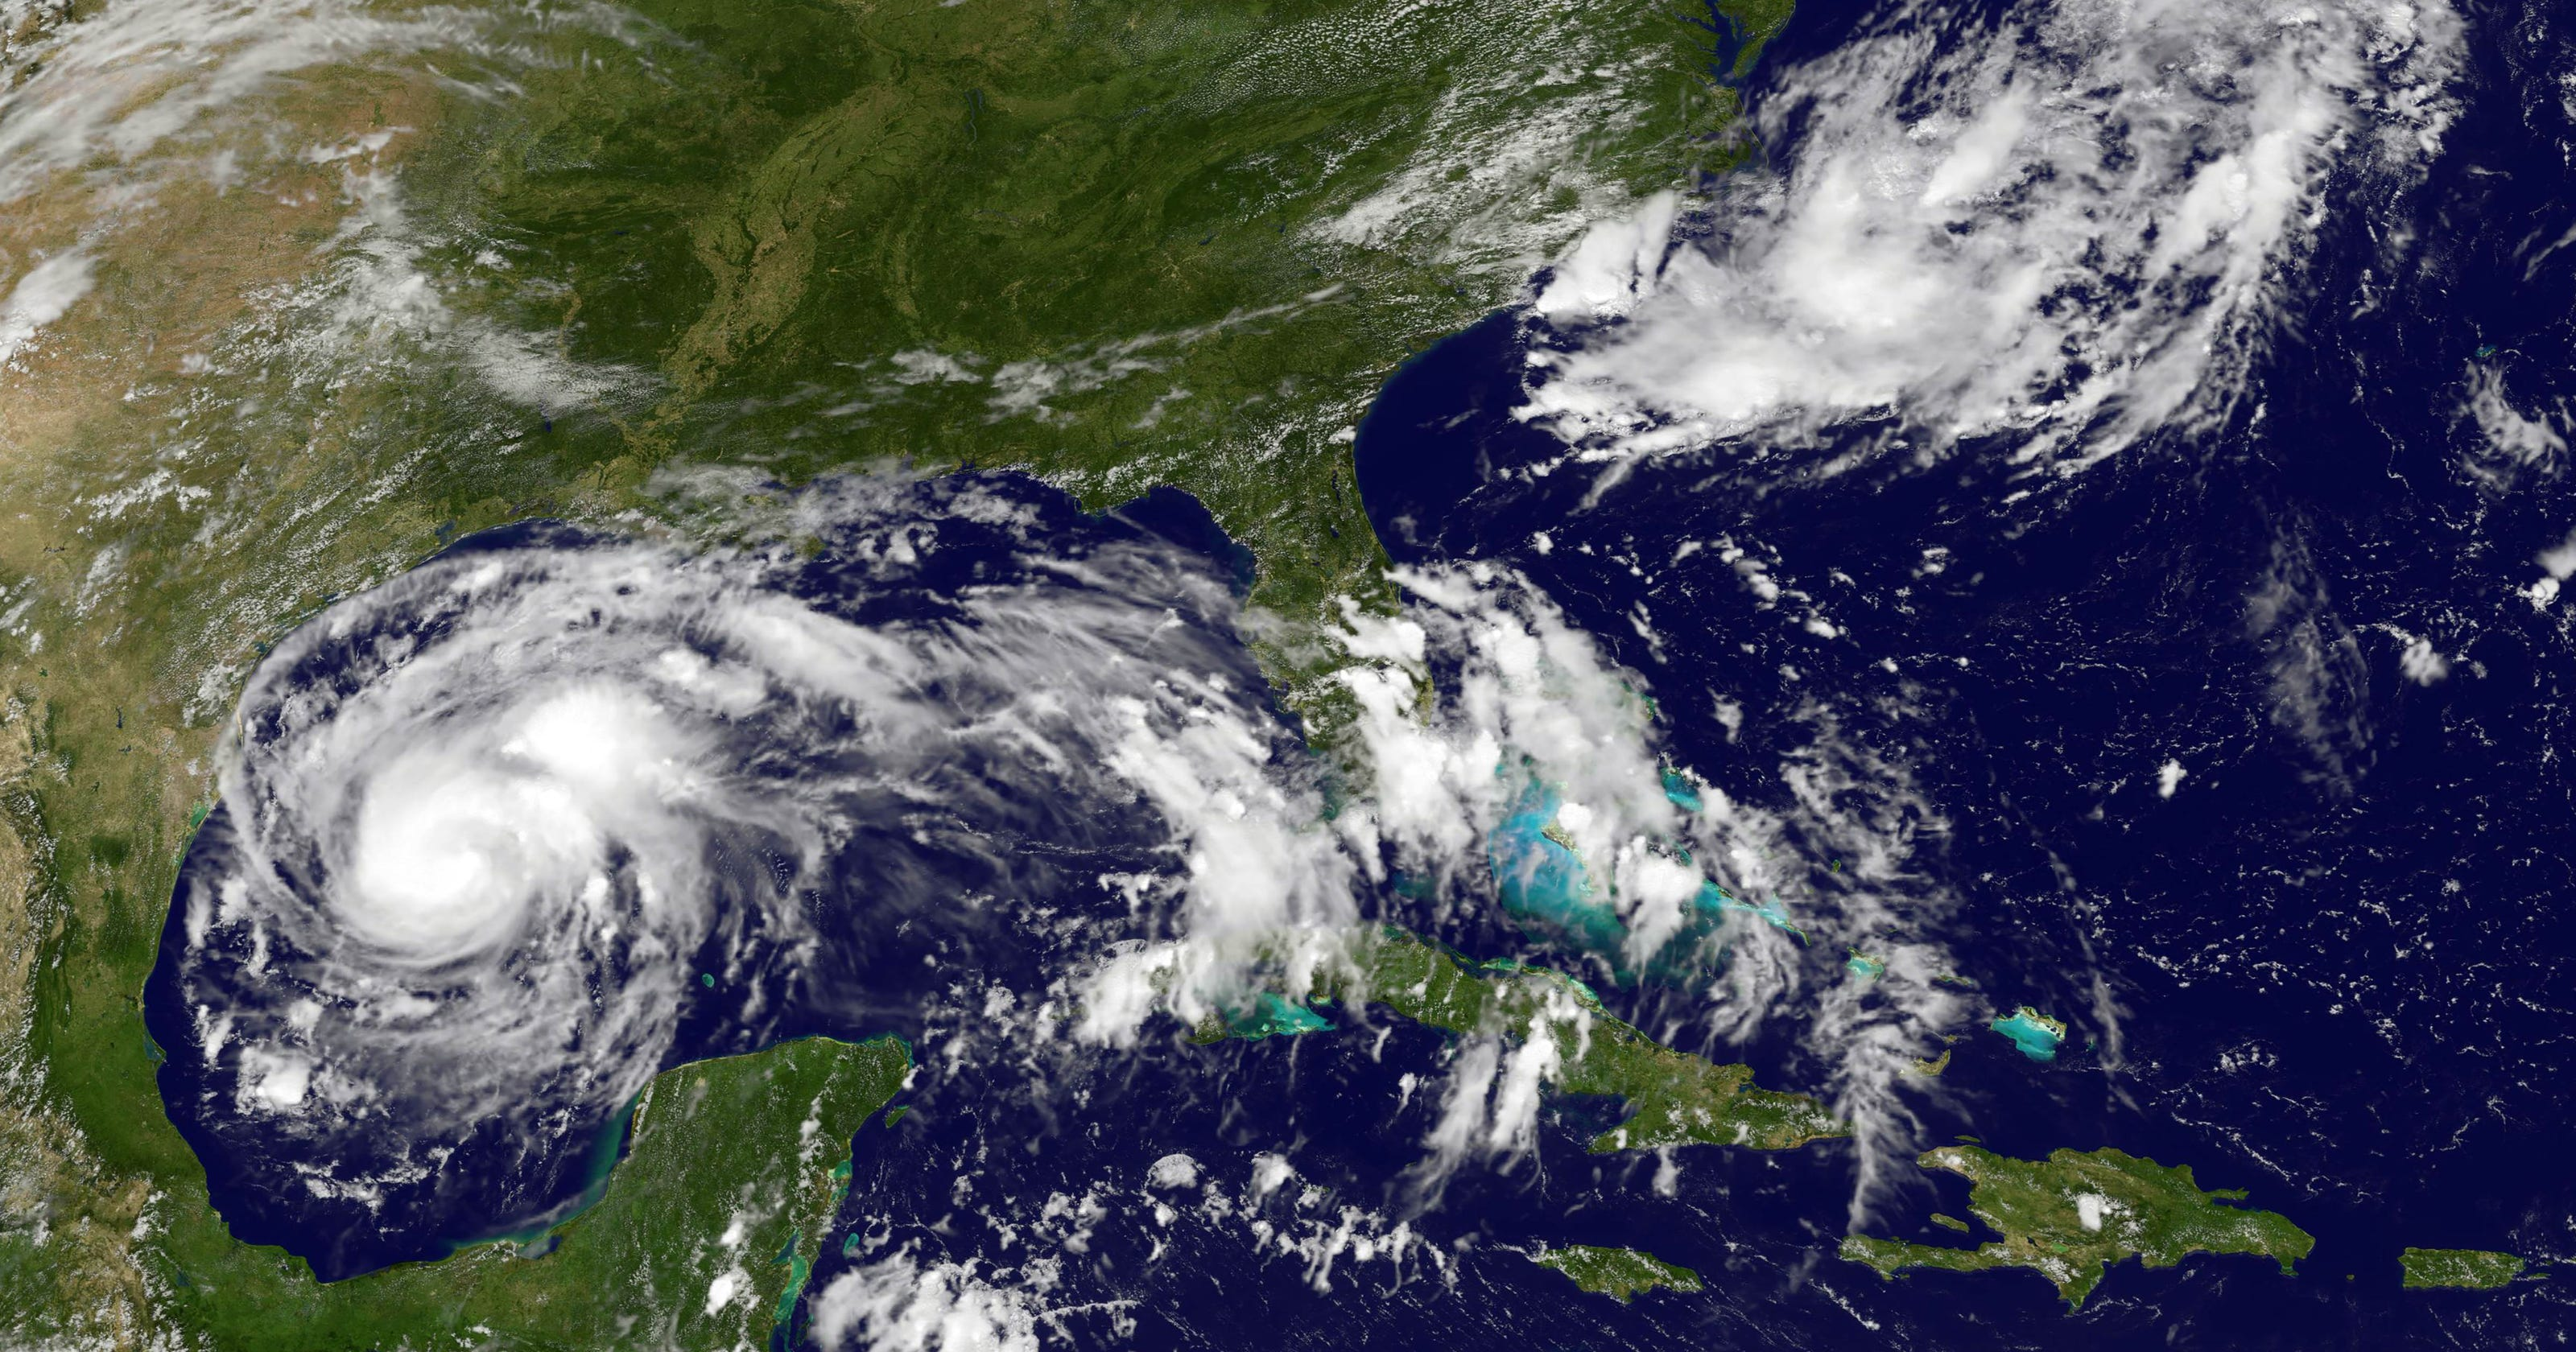 2018 hurricane season expected to be near normal with 6 hurricanes